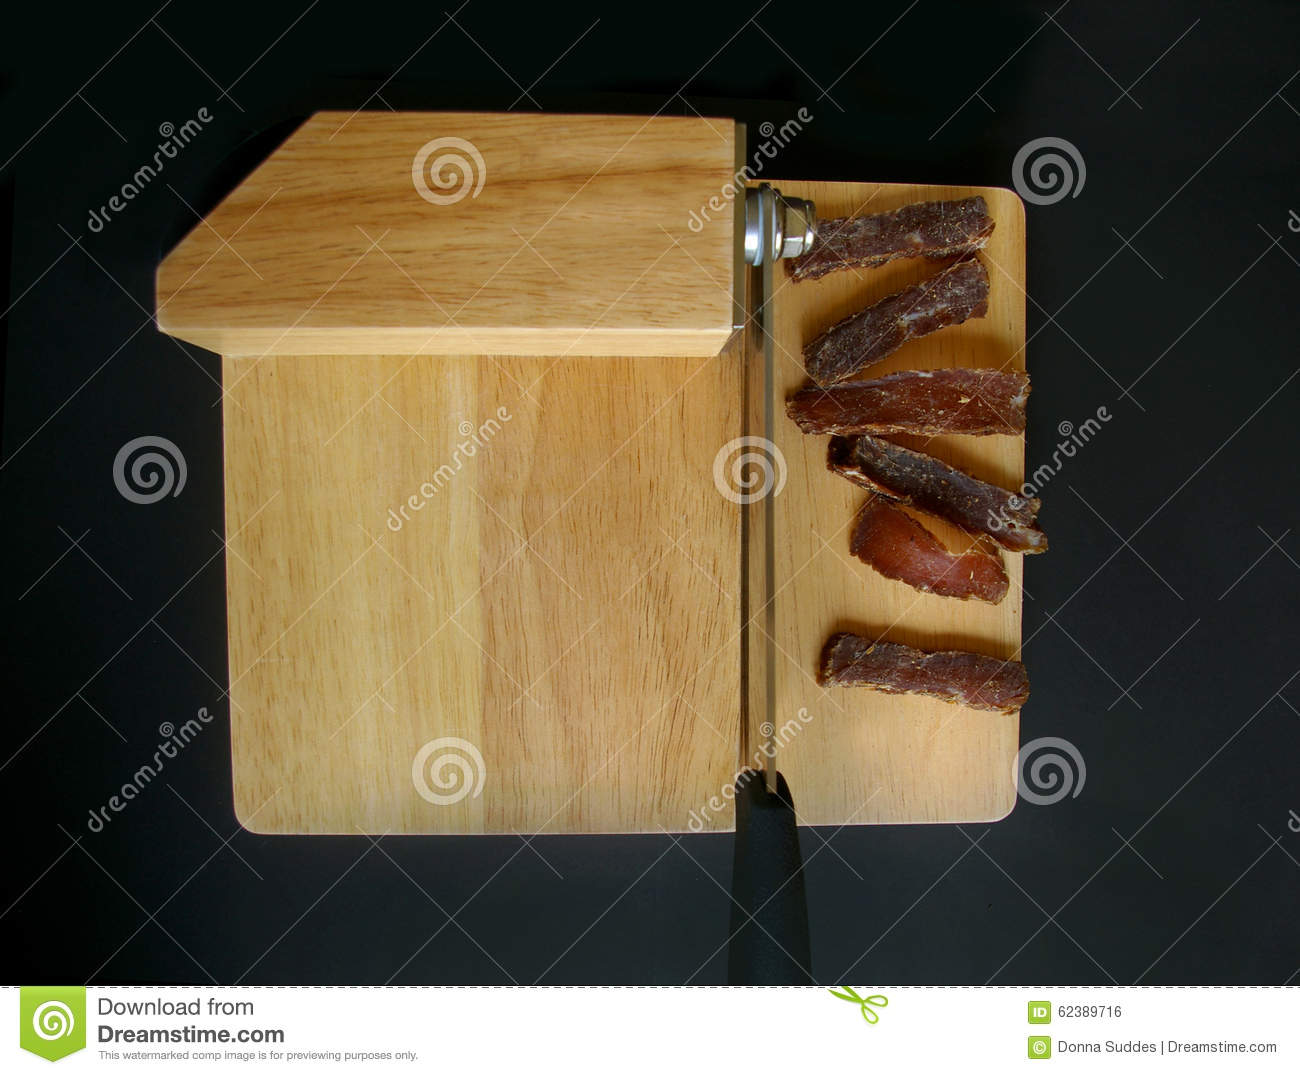 Biltong Dried Meat With Slicer Stock Photo - Image of dried